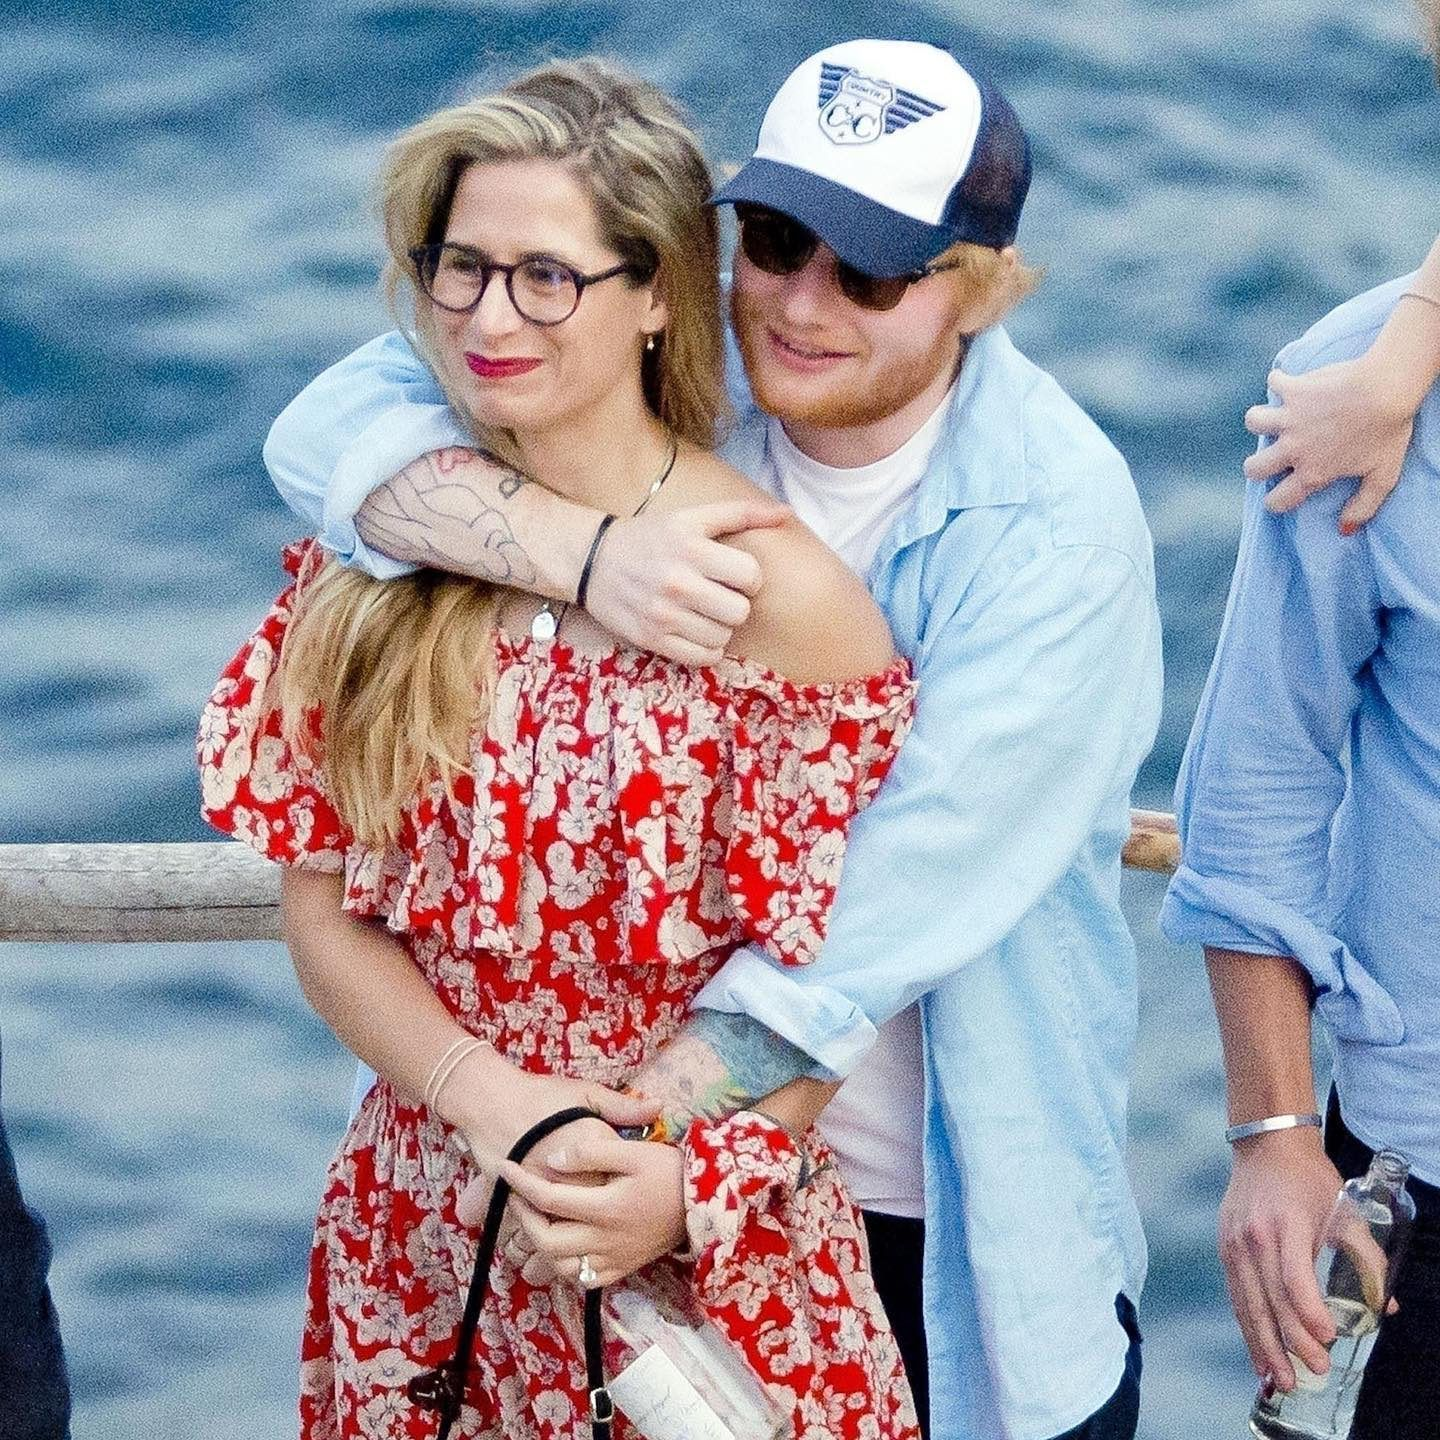 Ed Sheeran and his wife Cherry Seaborn were spotted looking happy as they went for a stroll in the rain with their 7-month-old daughter Lyra Antarctica in Sorrento Australia on Saturday. On Celebrity Couples